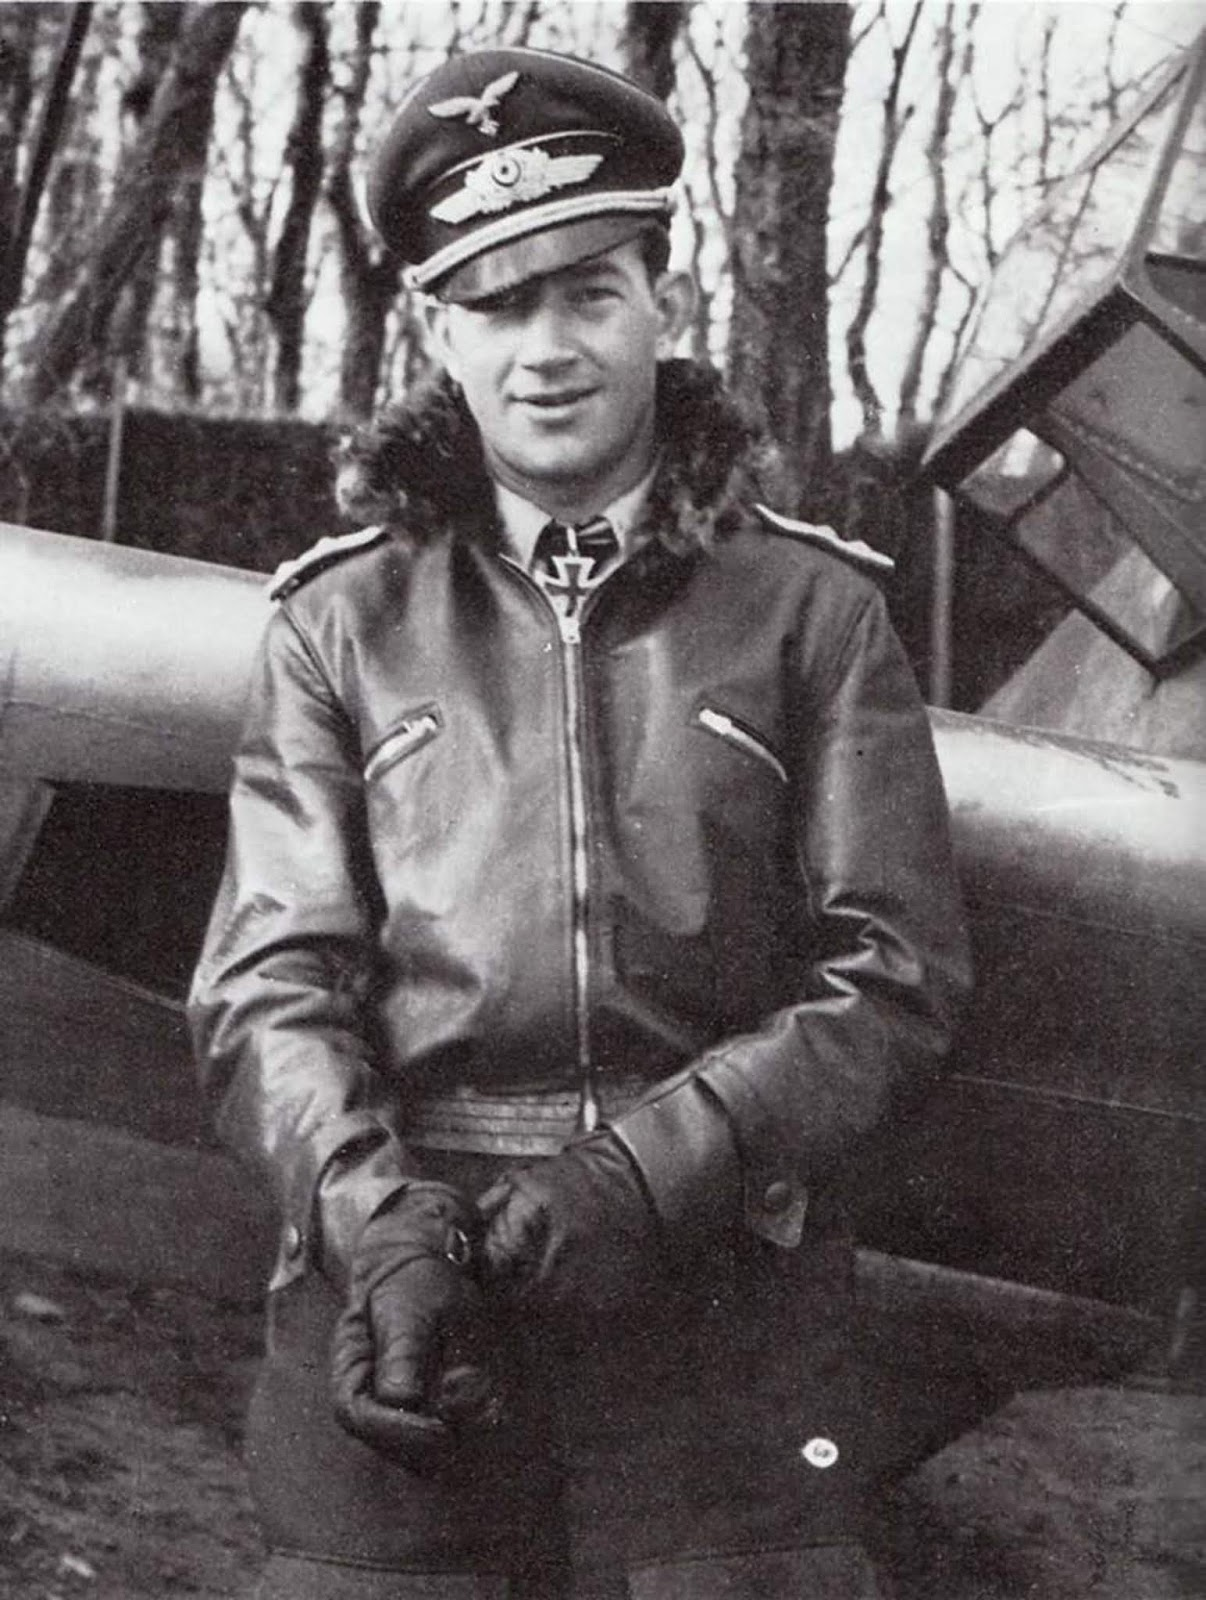 "Hermann-Friedrich ""Jupp"" Joppien had 70 victories, which was more than any Western Allied pilot. However, he was really a killer with the ladies when he donned that leather jacket. Check out the"